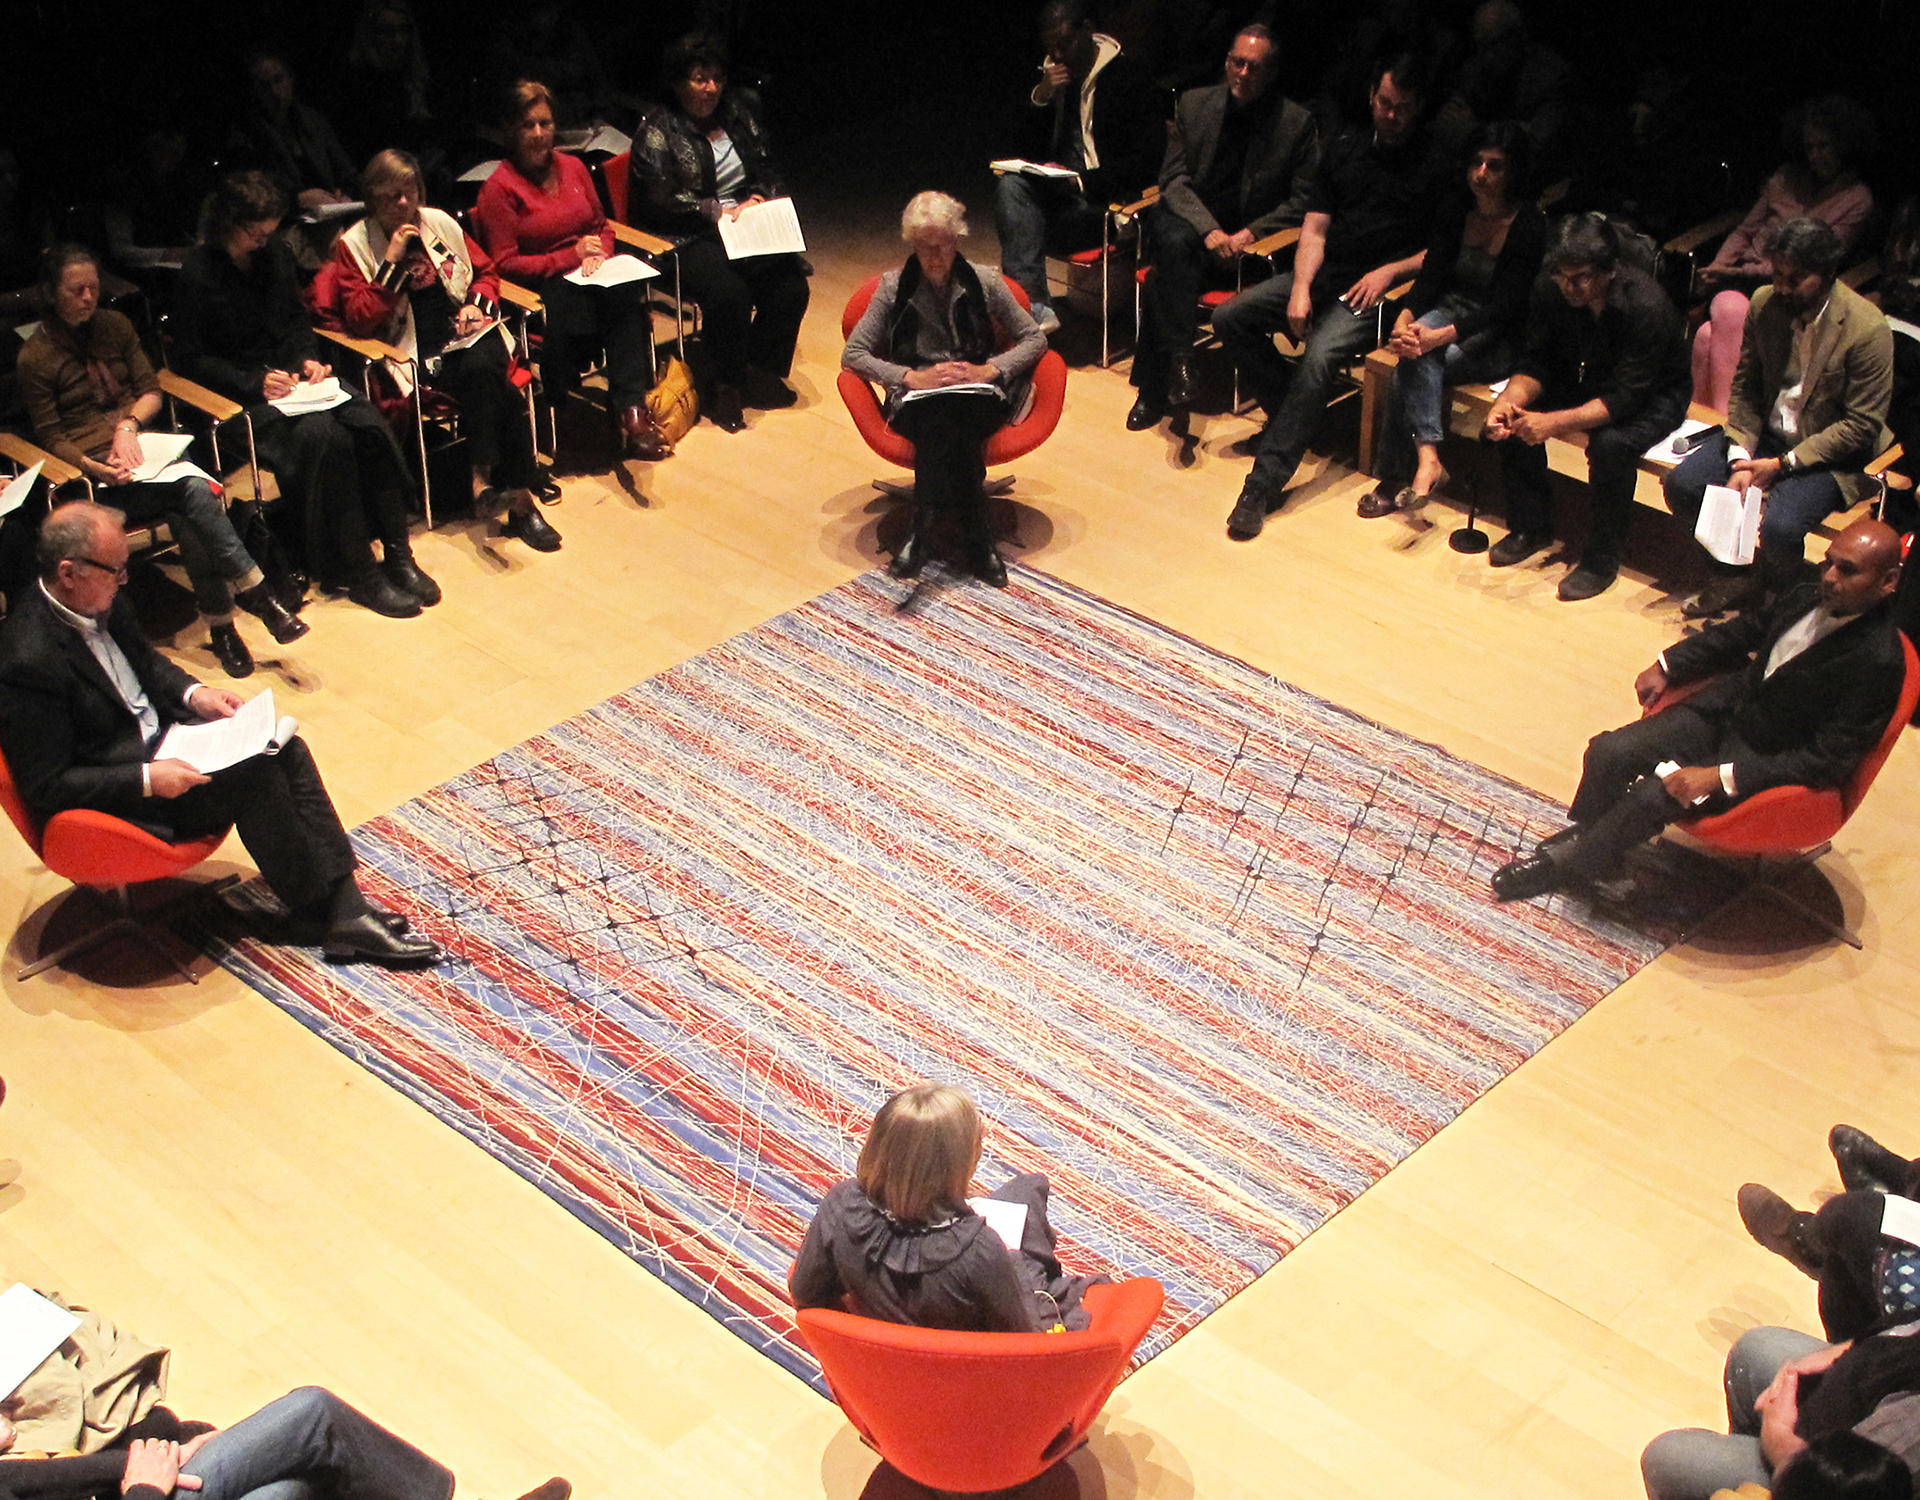 The Great Bare Mat Exchange, What Does Intelligence Do for Us? with Arani Bose, Chris Bratton, Joan Jonas, and Valentine Talland, October 25, 2013.